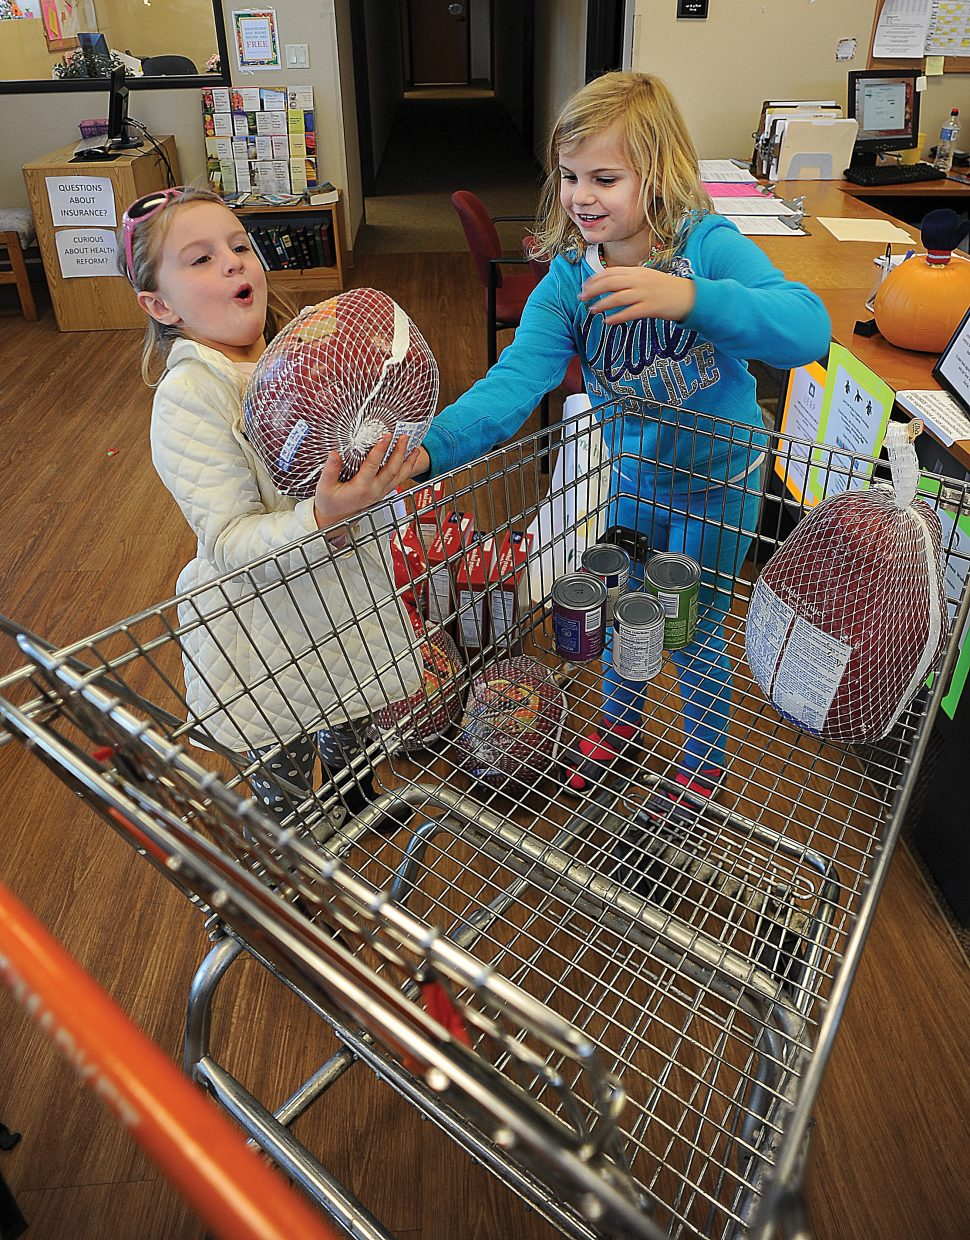 Makena James, left, and friend Ava Ford load food they bought into a cart at LIFT-UP of Routt County. The girls earned the money at a lemonade stand they ran in September and wanted to use it to buy Thanksgiving turkeys and trimmings to donate to the local food bank. The girls also raised money last winter caroling and plan to purchase gifts for the cancer ward at Children's Hospital this holiday season.